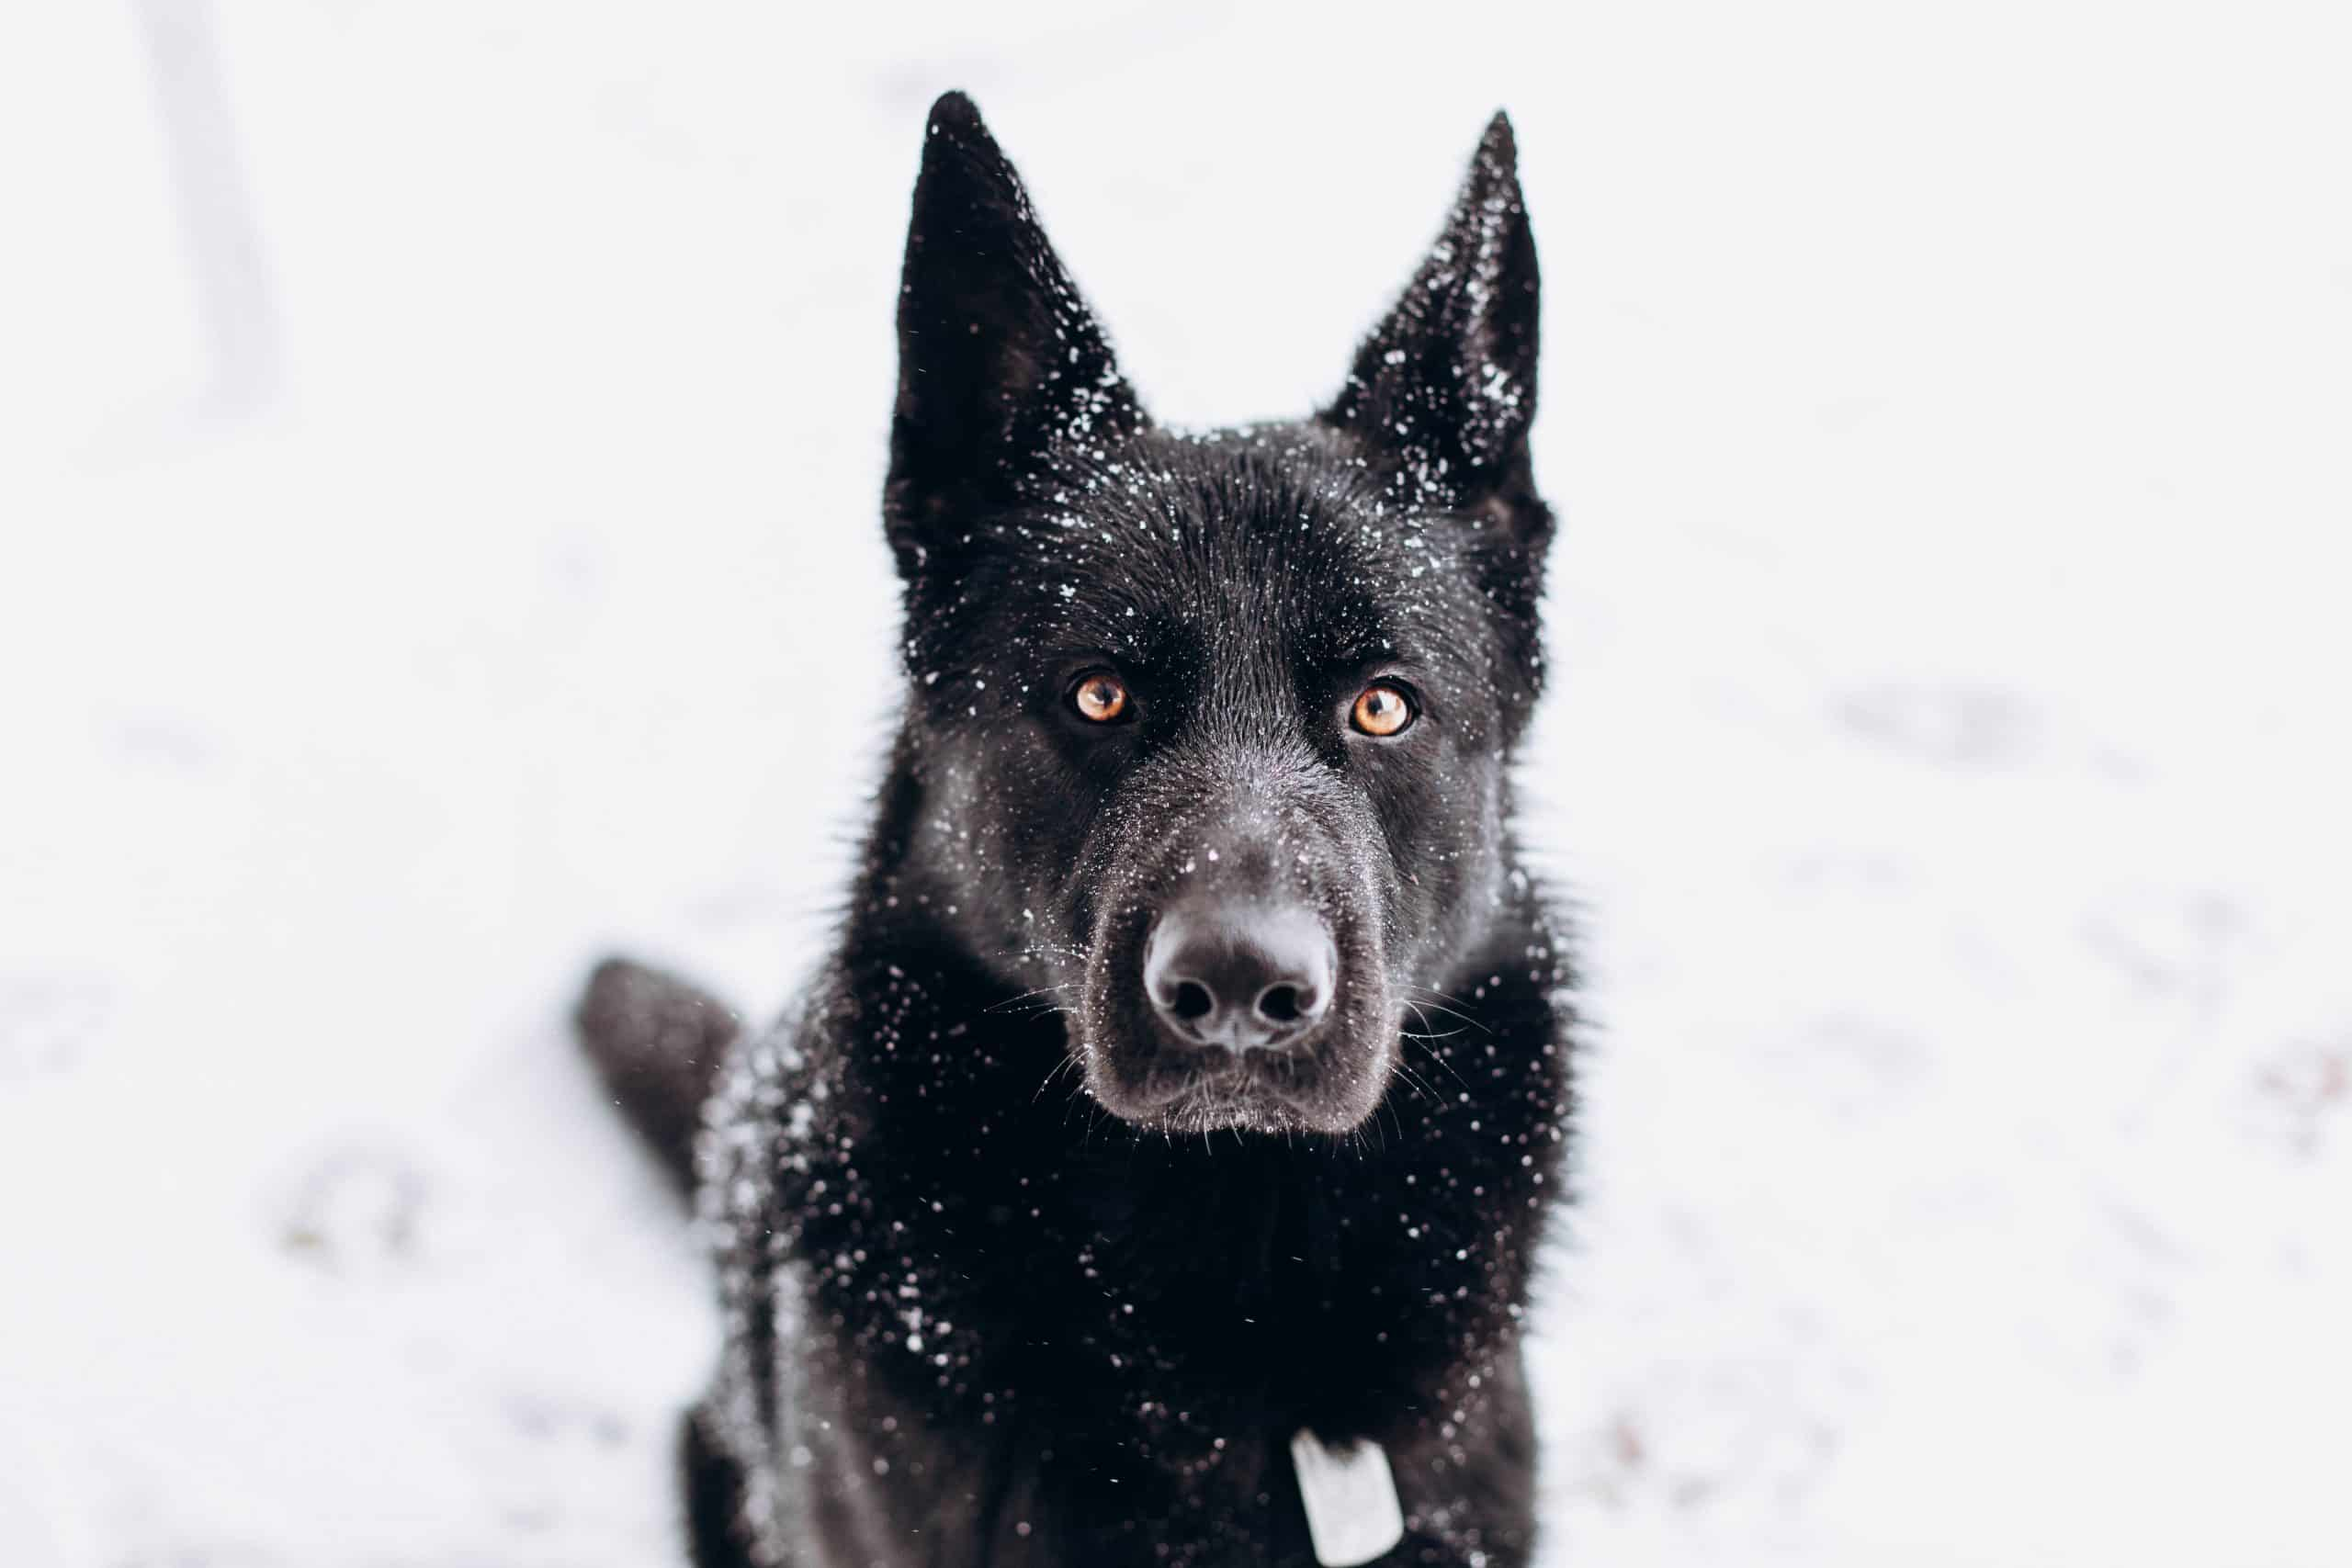 Max the German shepherd, the greatest name of them all for this regal breed